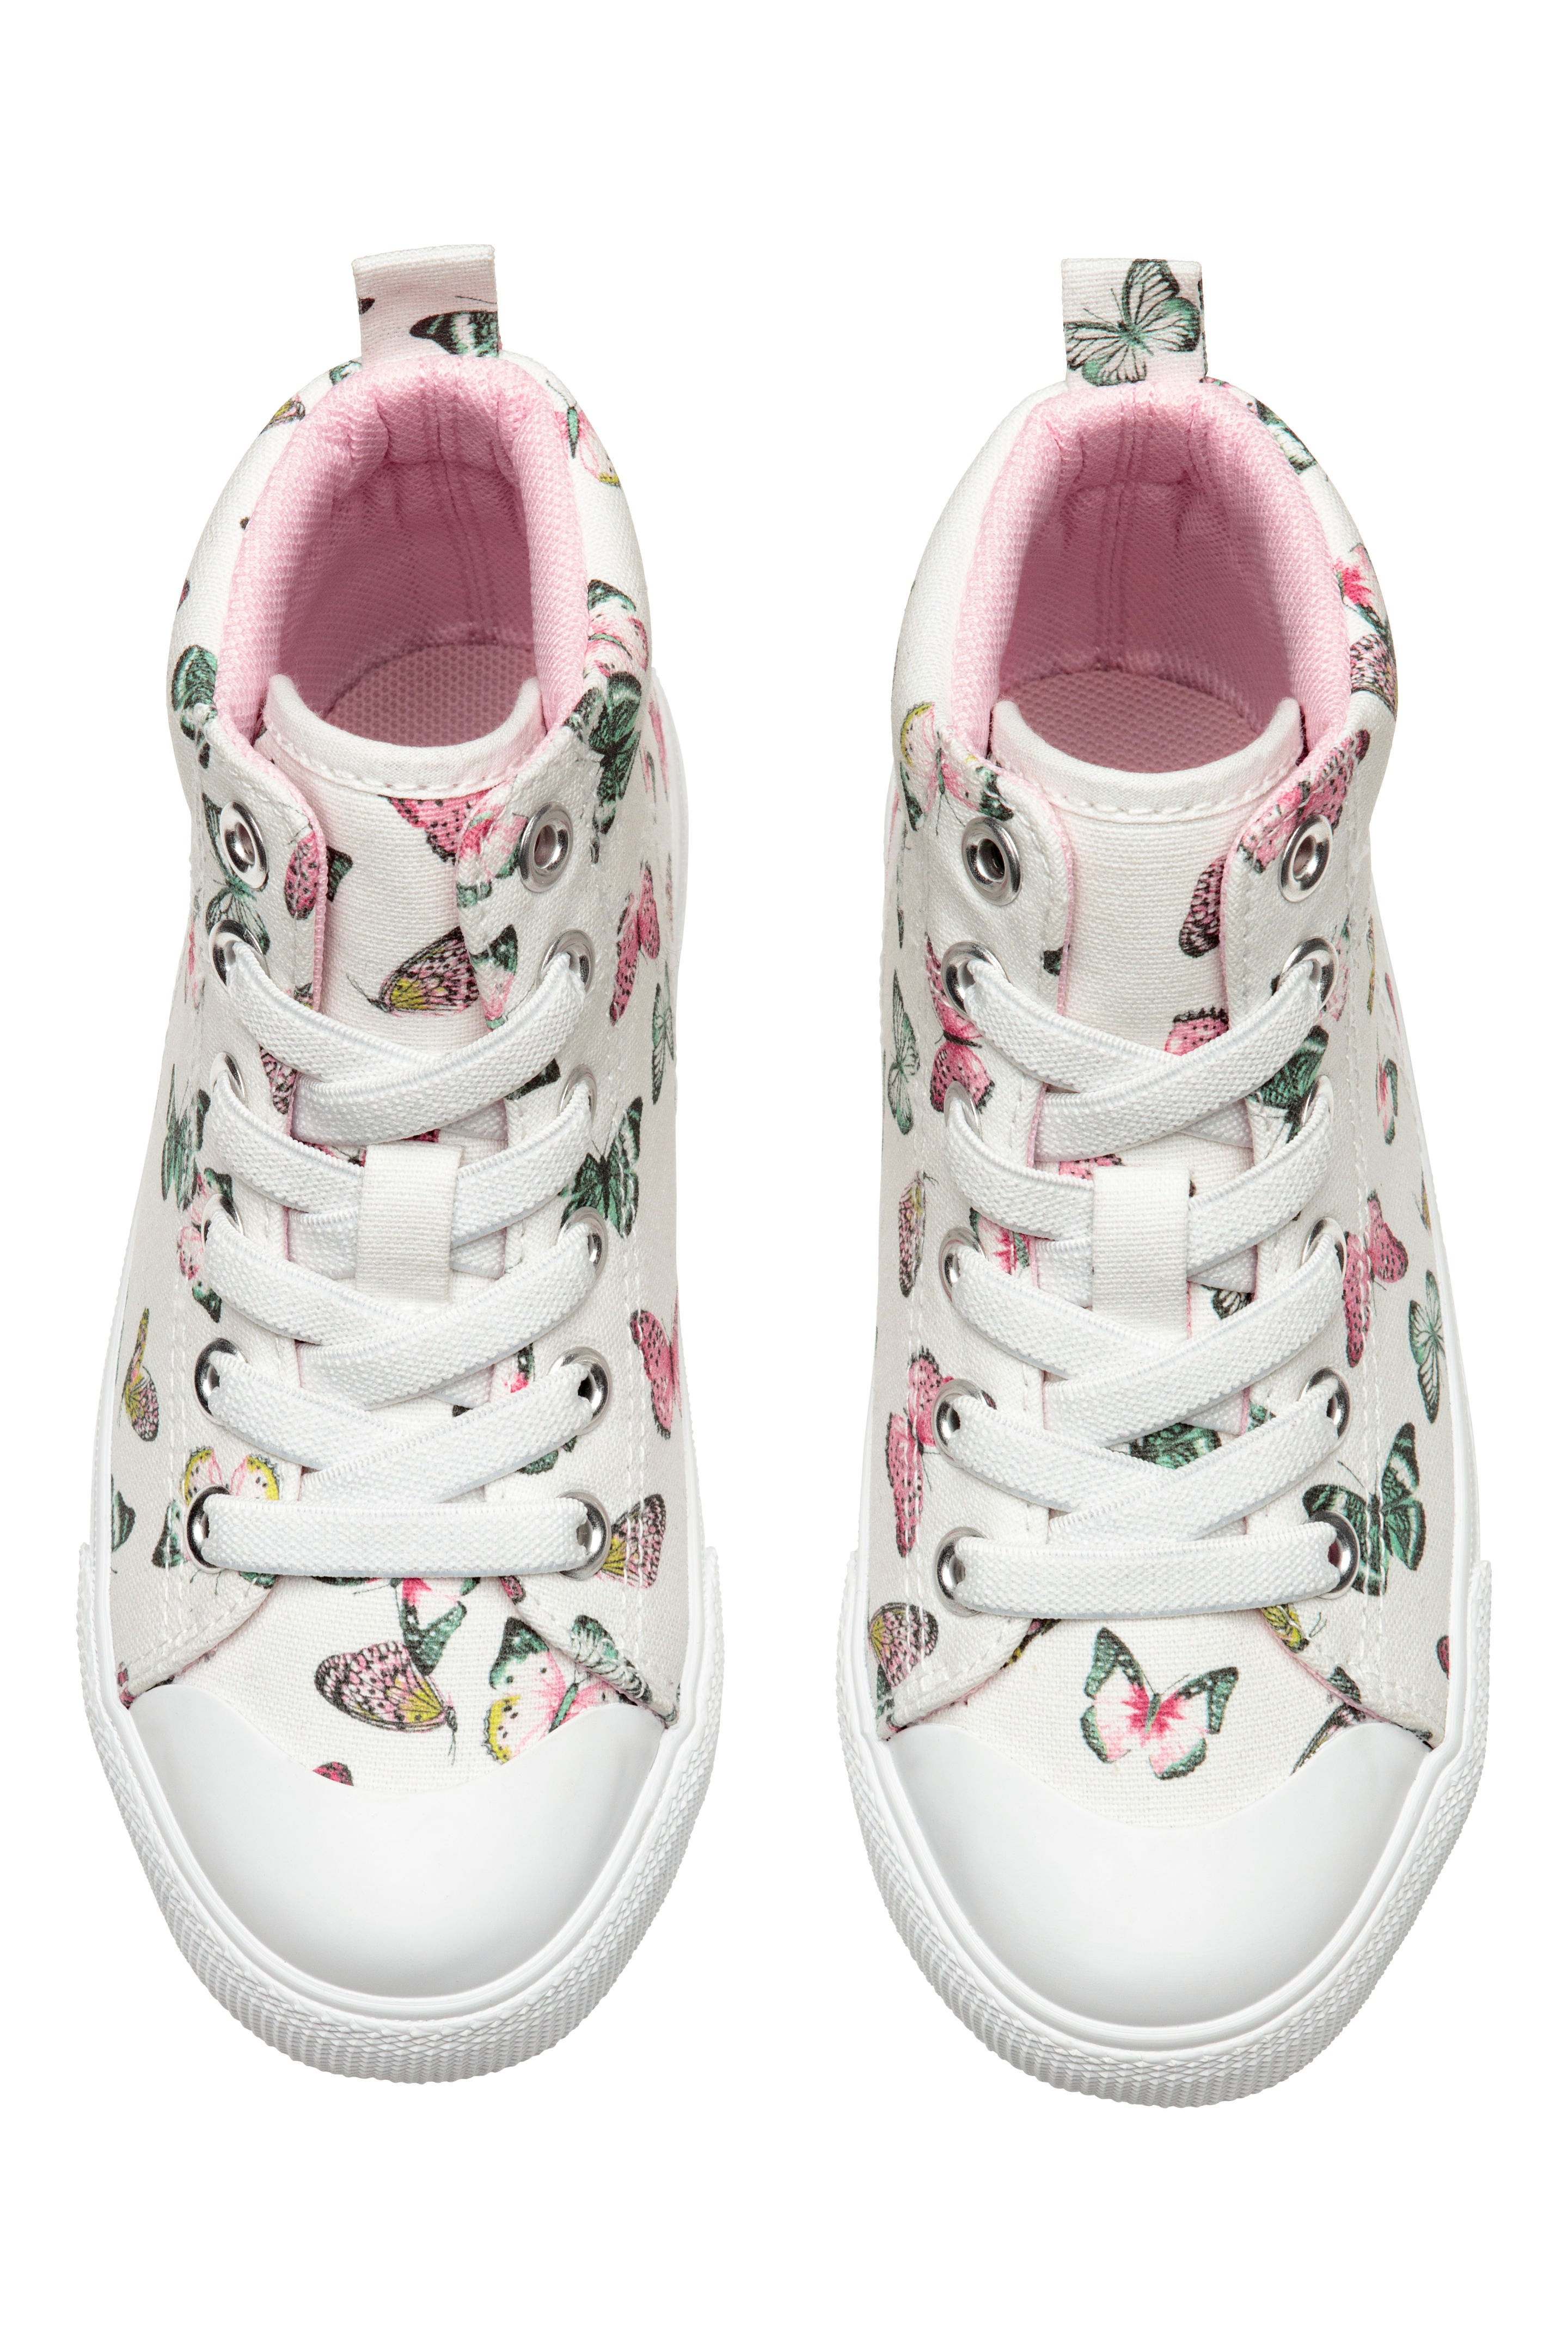 H M Hi Top Girl Trainers 29 White